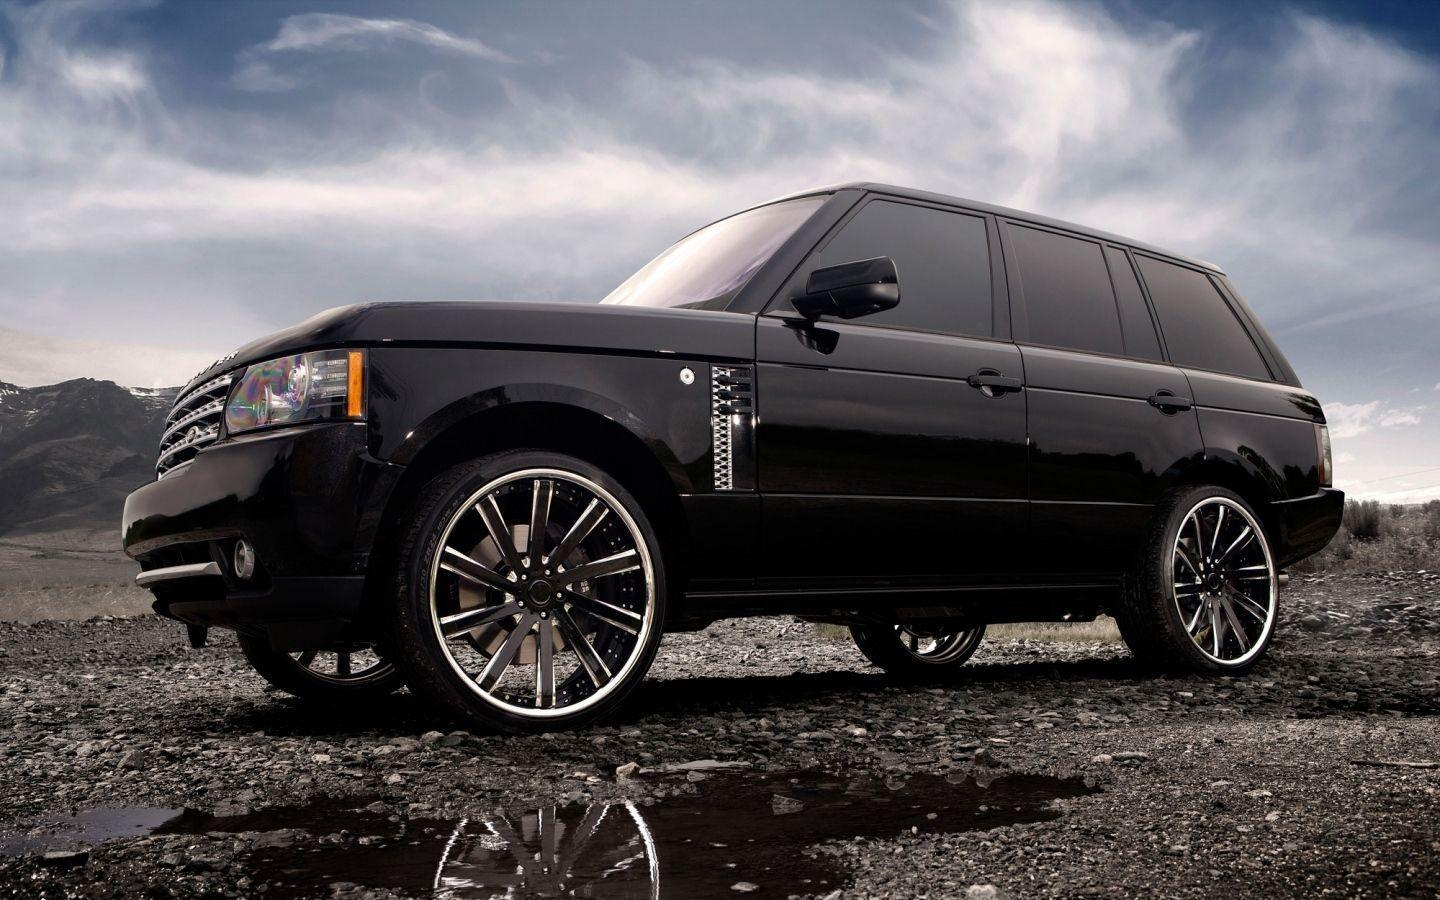 1440x900 Range rover Wallpapers HD, Desktop Backgrounds 1440x900 ...